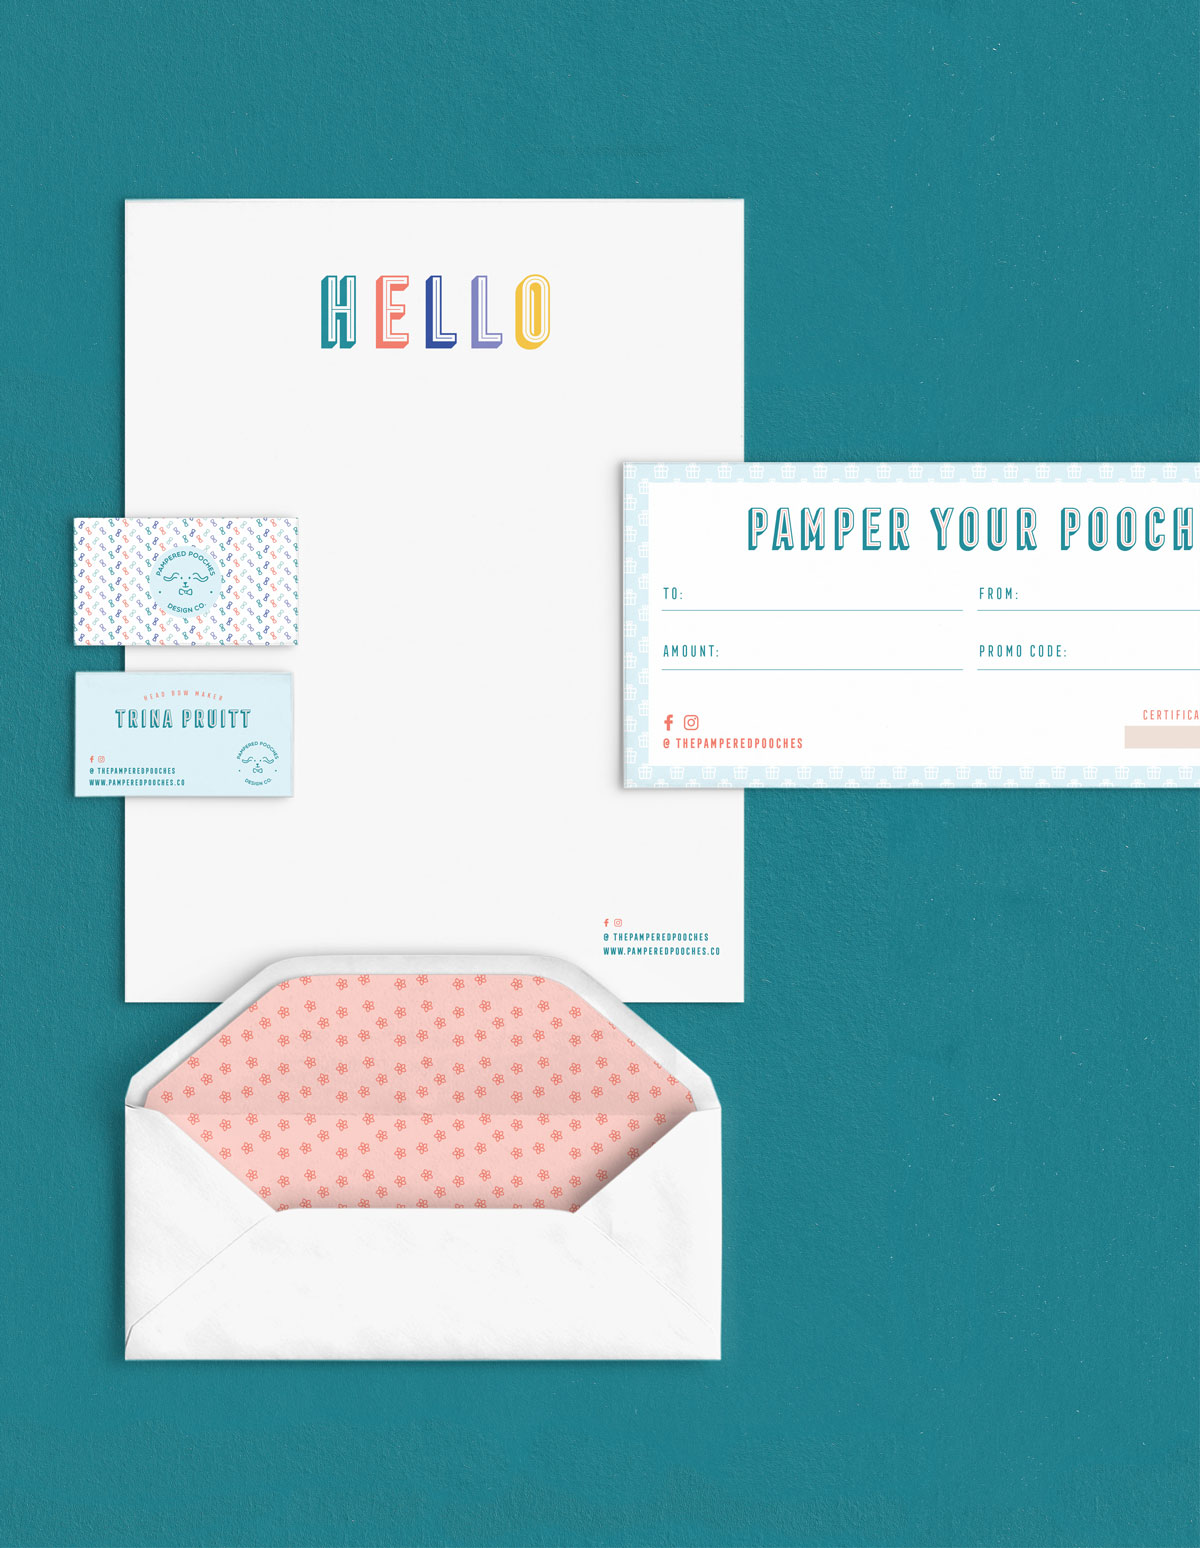 stationary, business cards, envelope, and brochure